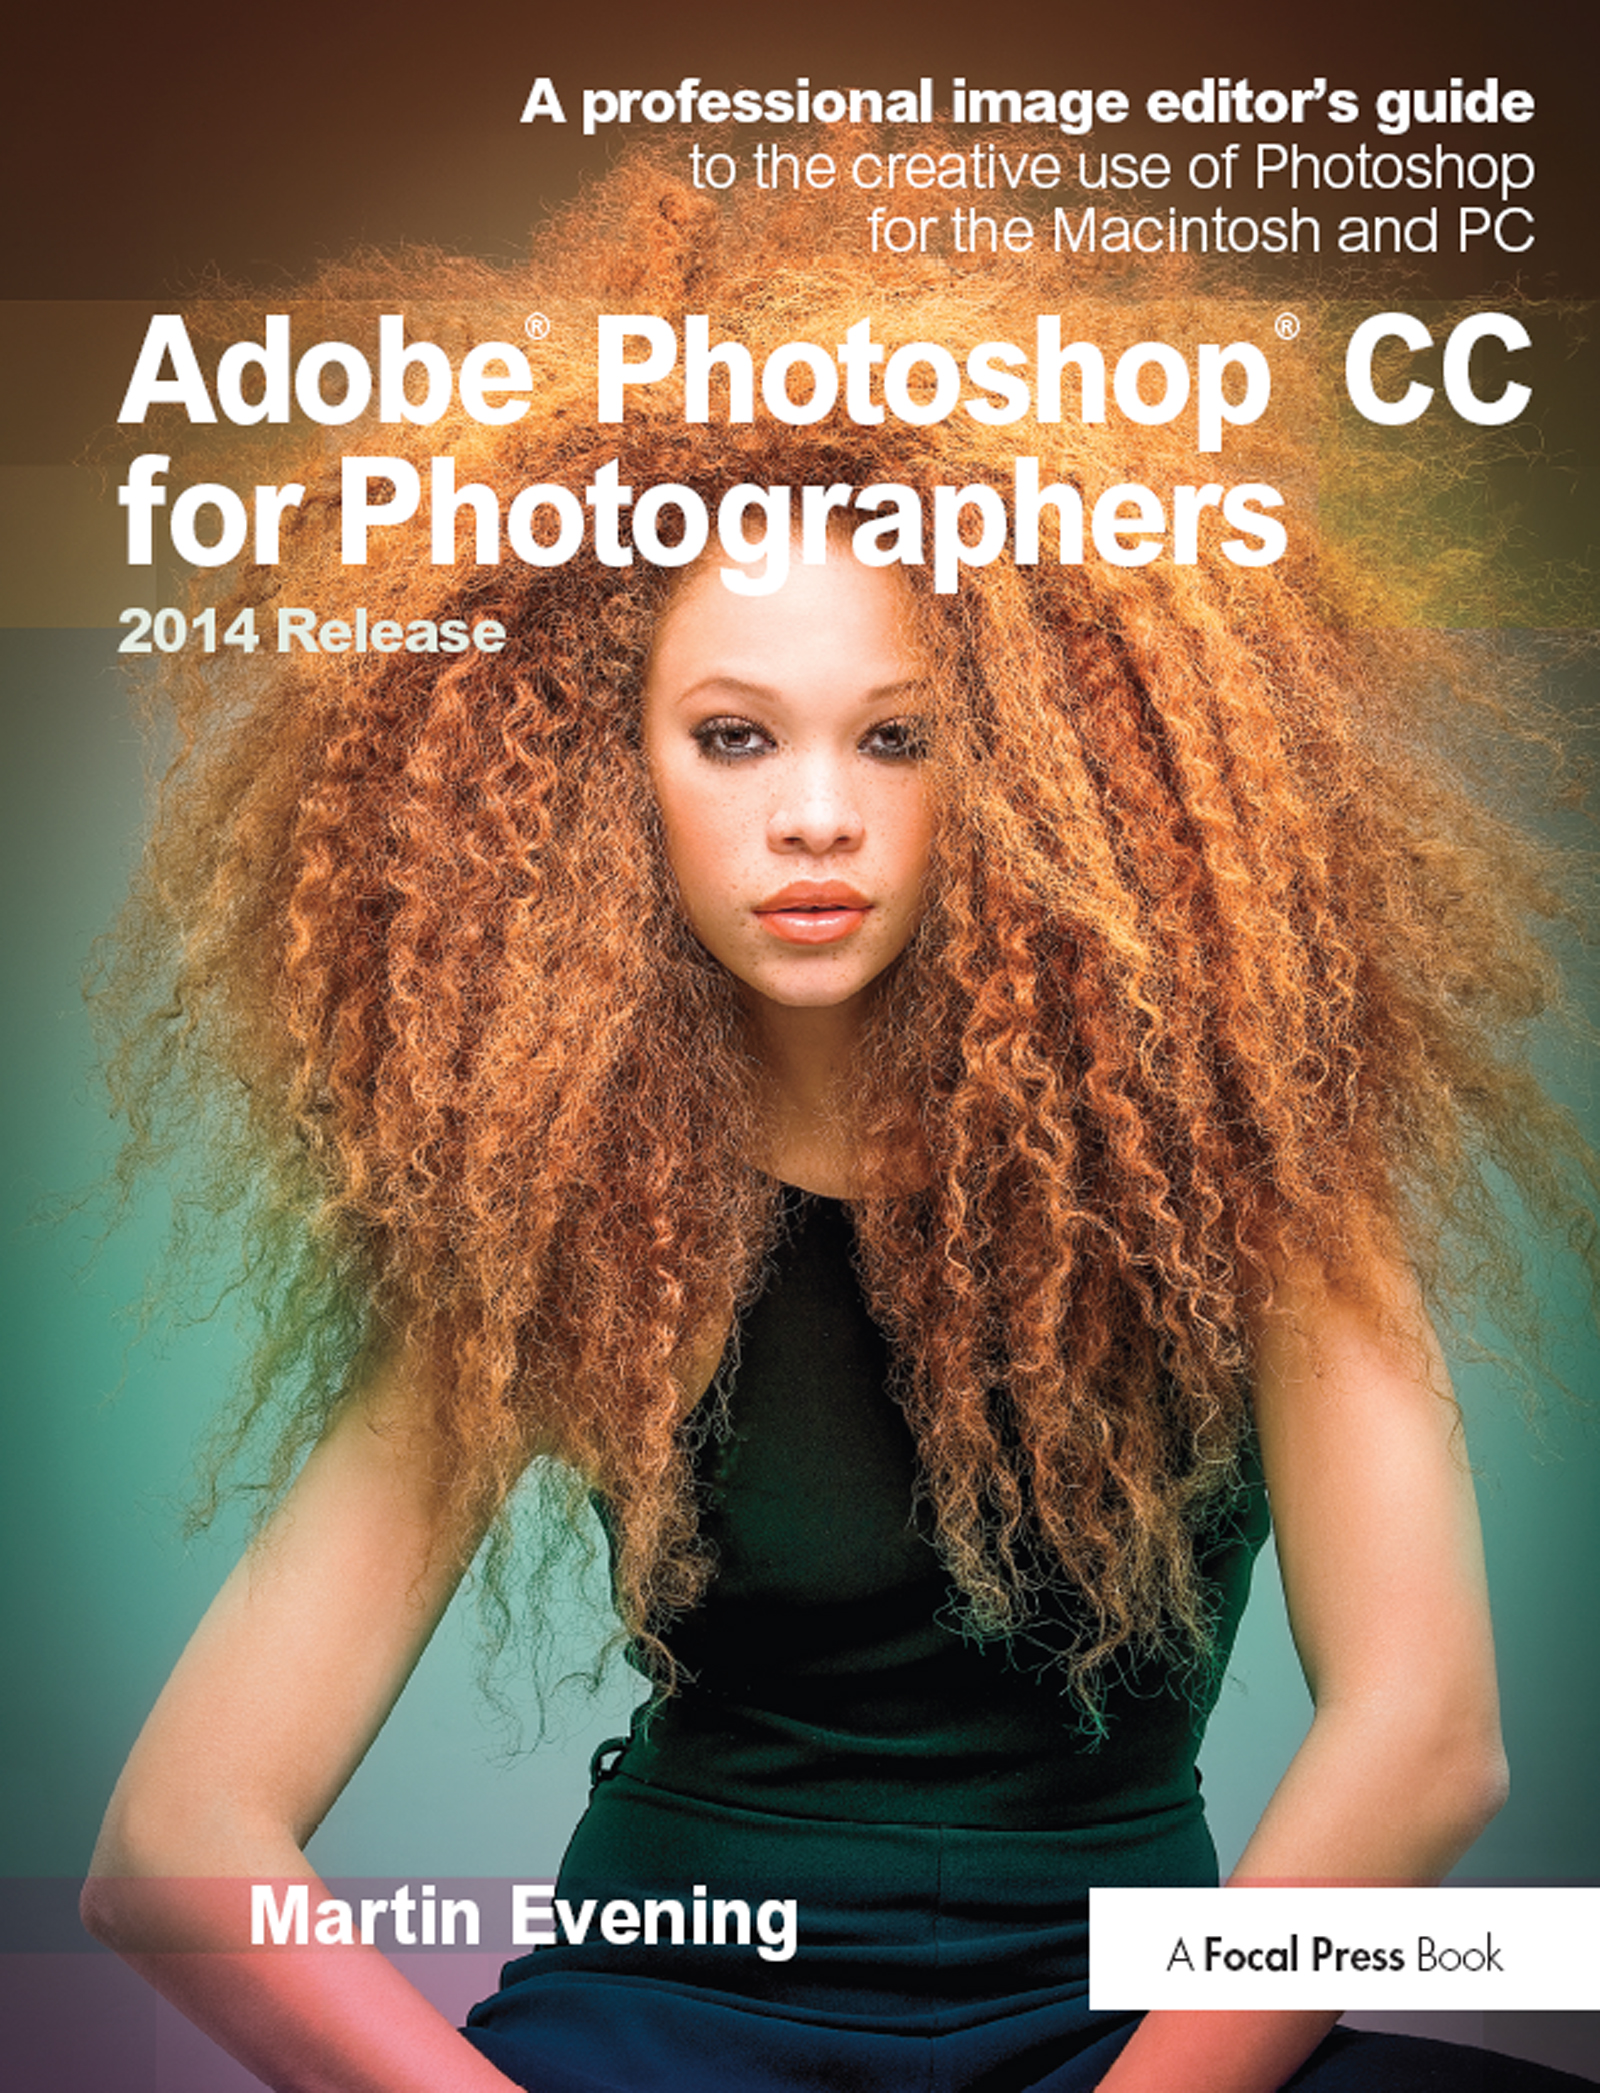 Adobe Photoshop CC for Photographers, 2014 Release: A professional image editor's guide to the creative use of Photoshop for the Macintosh and PC book cover